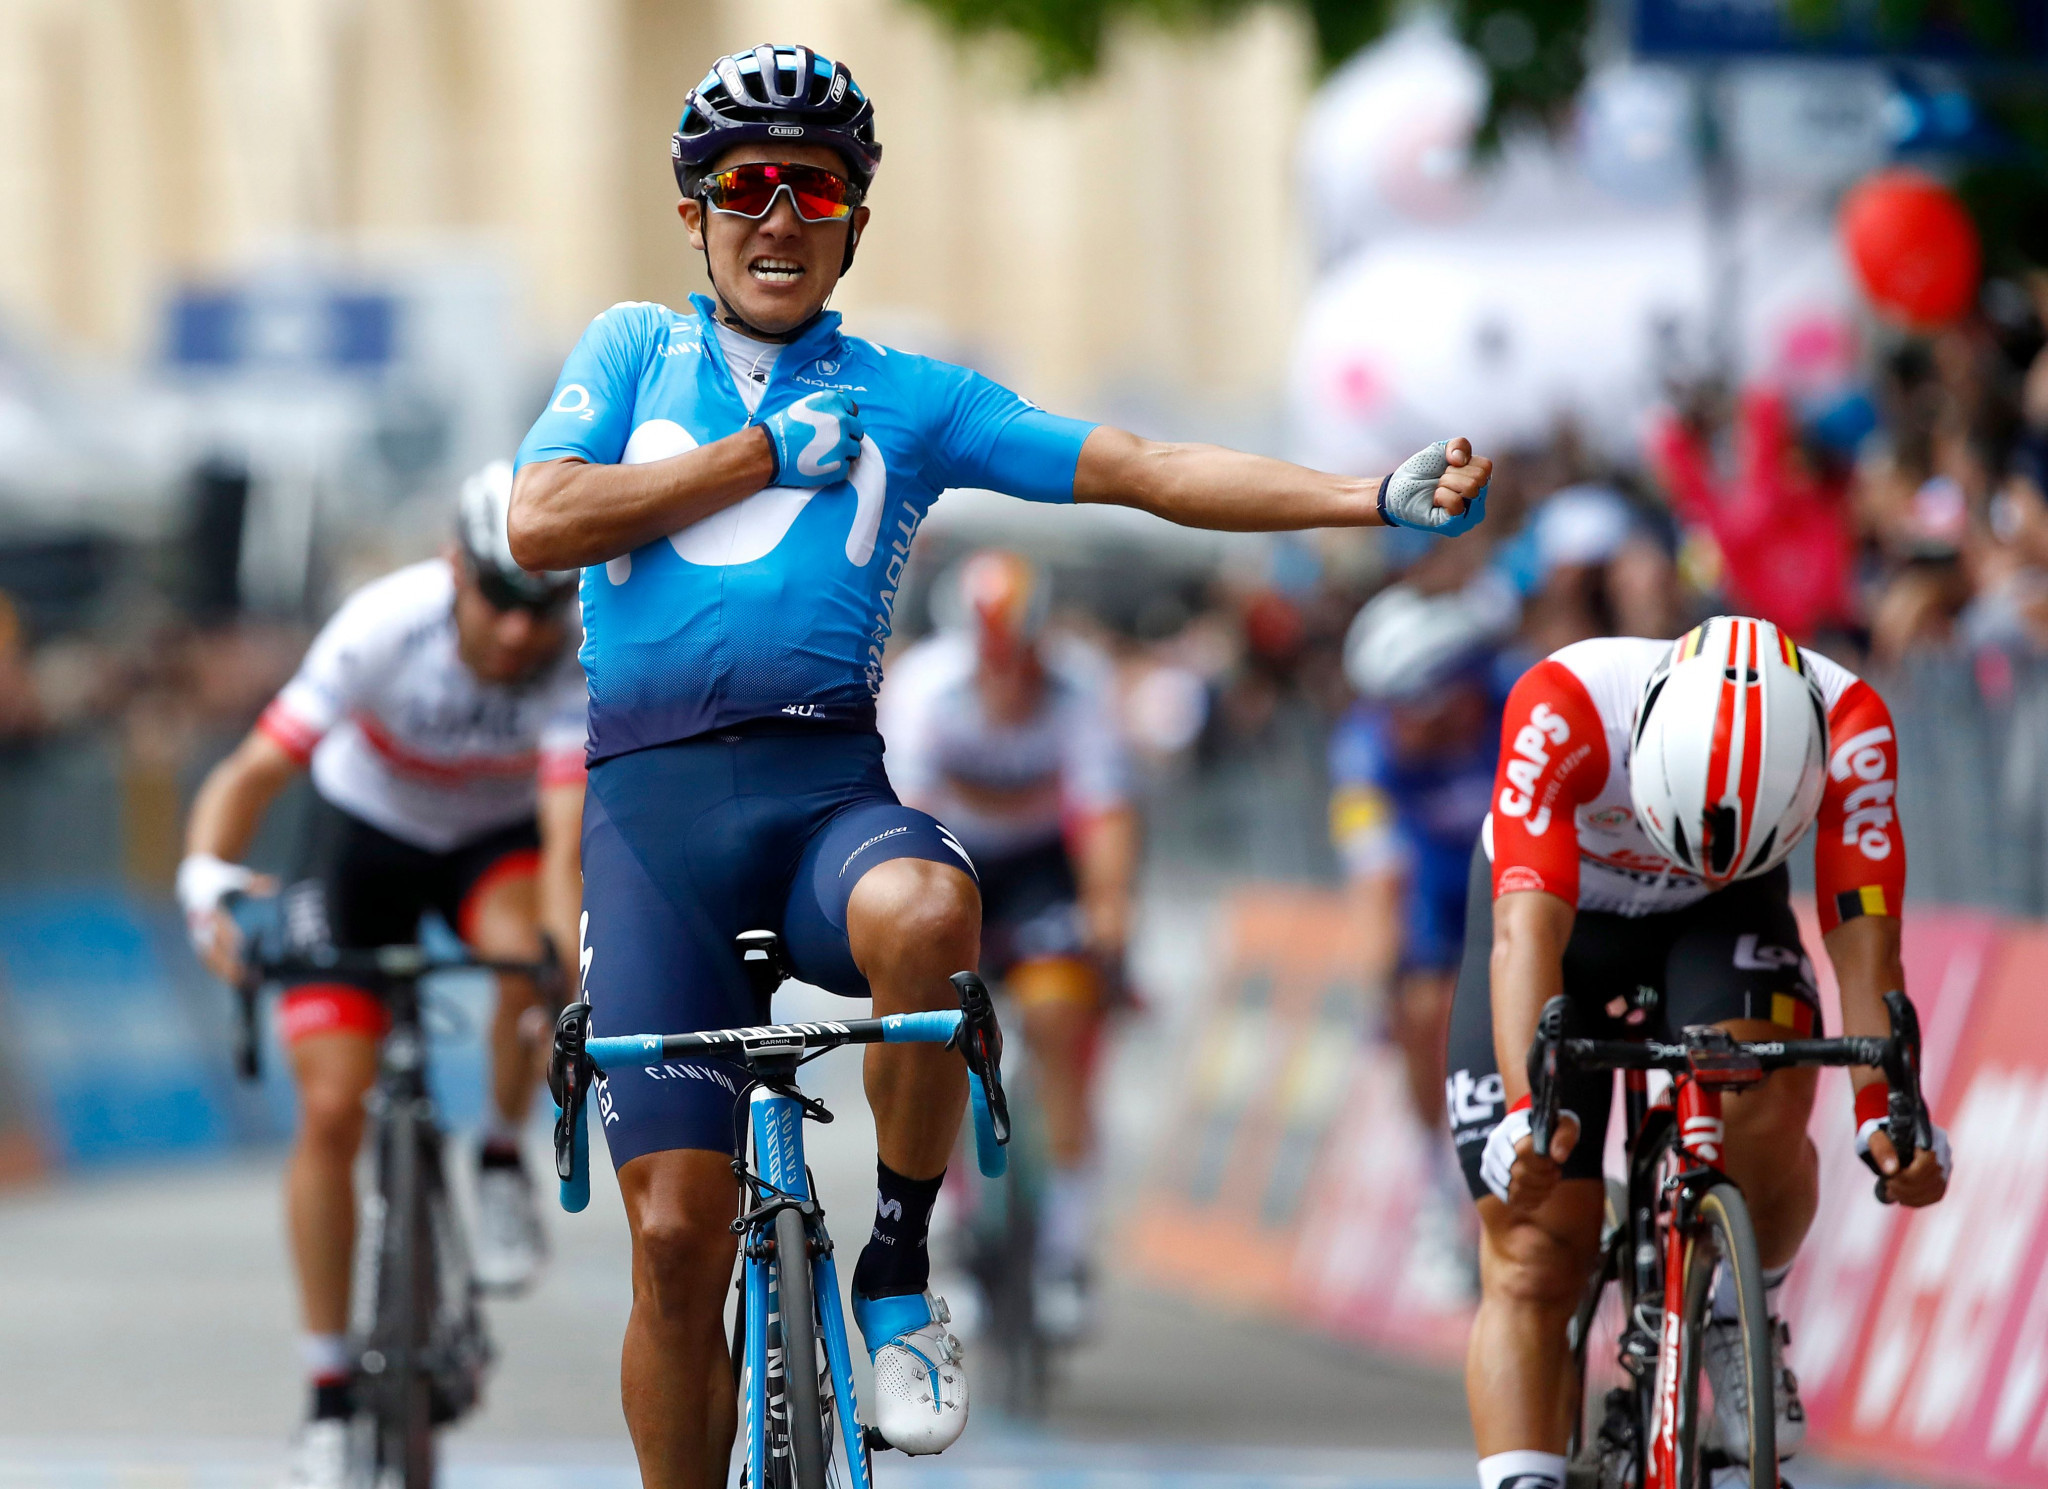 Ecuador's Richard Carapaz won last year's Giro d'Italia and will be delayed in his defence of his title ©Getty Images